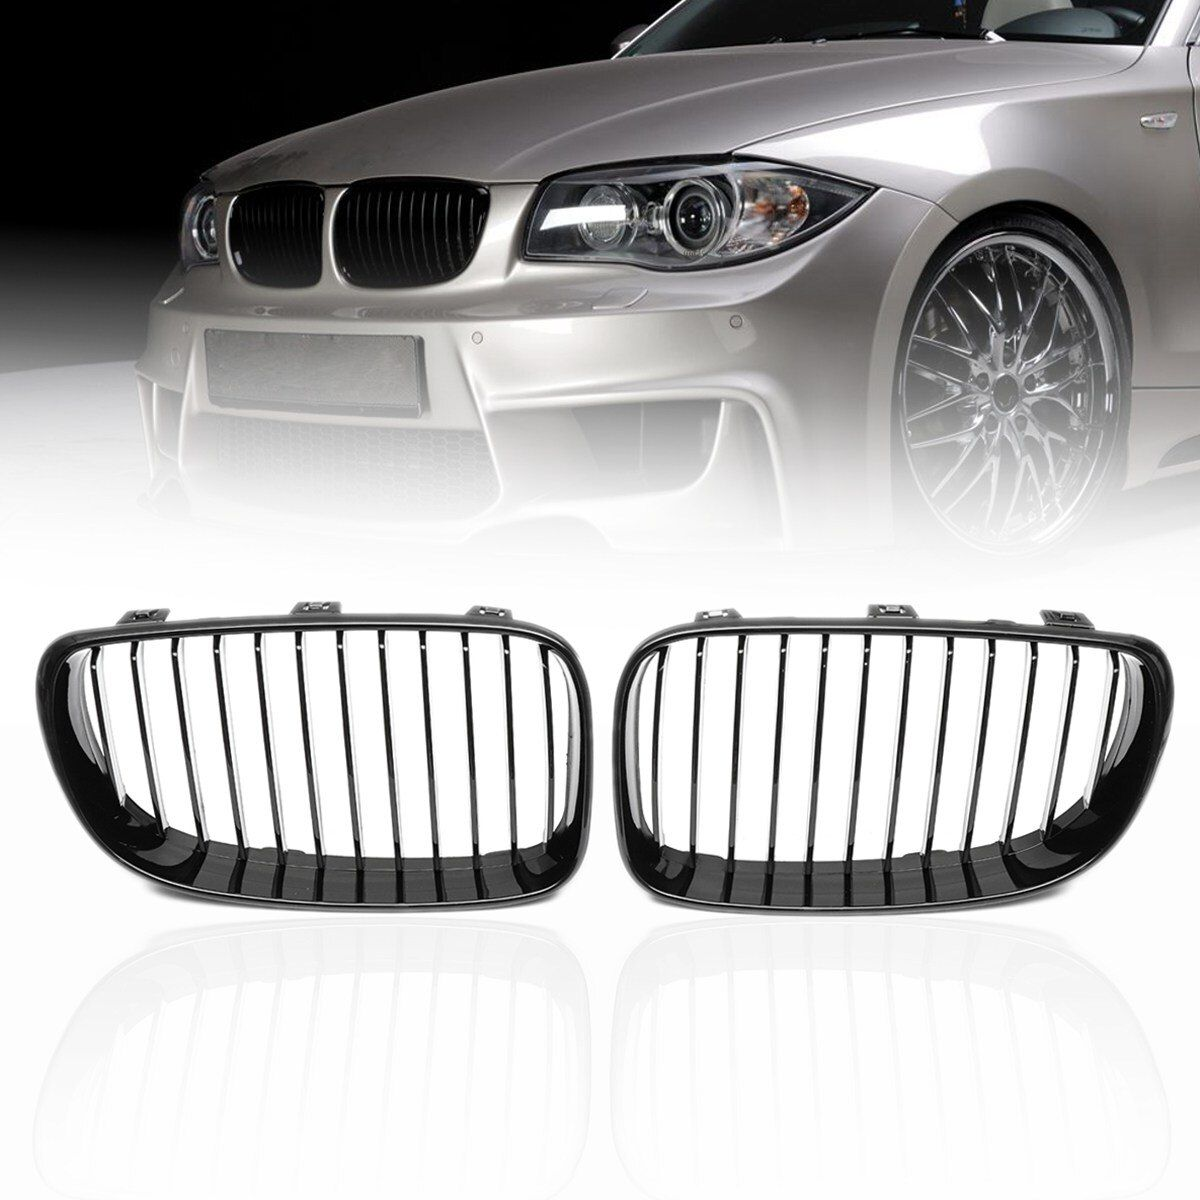 Pair ABS Side Matte Gloss Black Front Kidney Grilles For BMW 1 SERIES E81 E82 E87 E88 2d 4d 2007 2008 2009 2010 2011 2012 2013